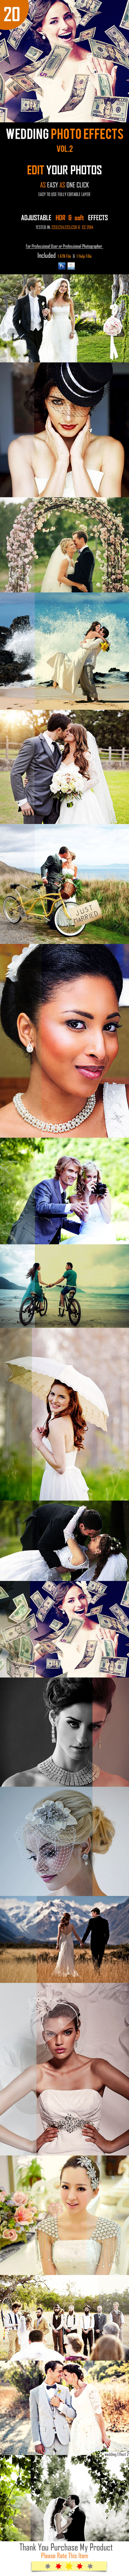 GraphicRiver 20 Wedding Photo Effects Vol.2 11024880